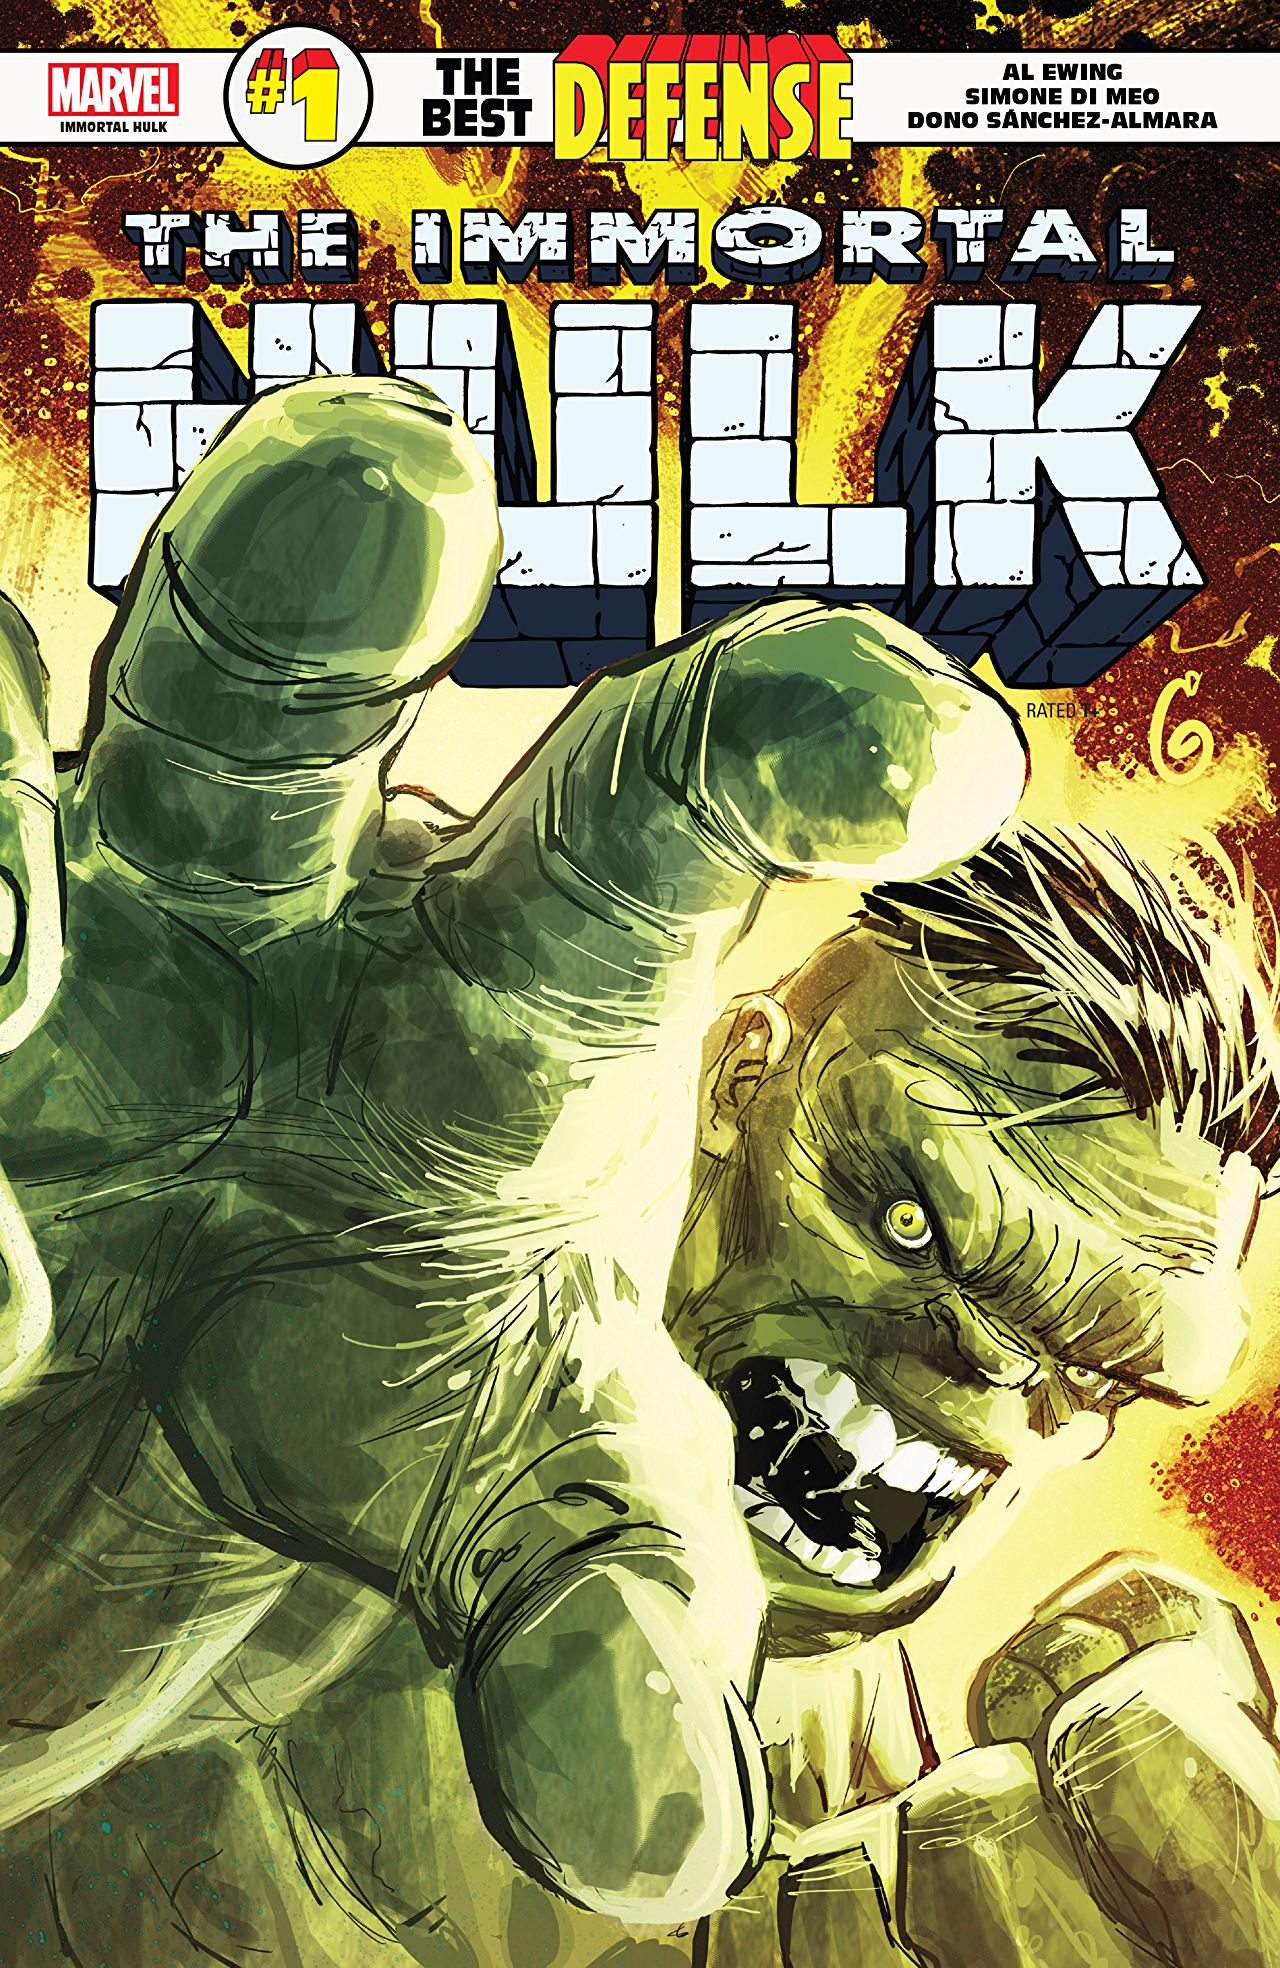 Immortal Hulk: The Best Defense #1 review: Clever, creative storytelling